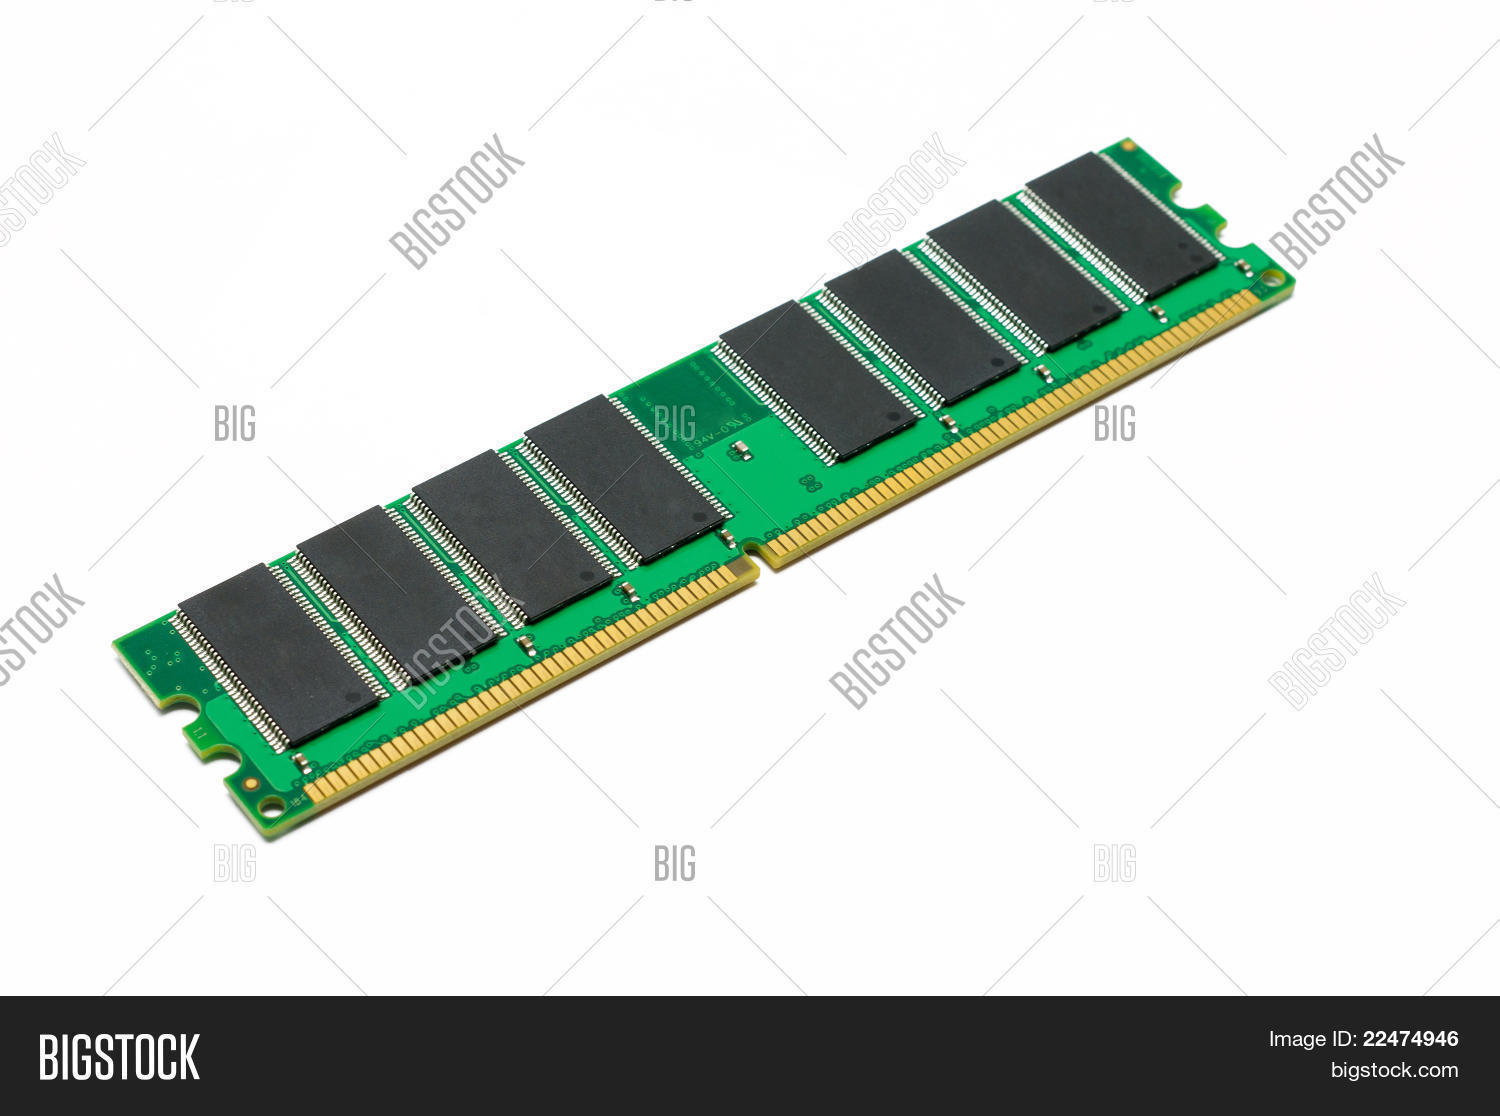 access,cache,cadence,chip,circuit,component,computer,dimm,dram,erom,flash,flashram,hardware,integrated,megabyte,memory,microprocessor,motherboard,only,part,peripheral,processing,programmable,prom,ram,random,read,rom,sdram,signal,silicon,sim,simm,sram,testability